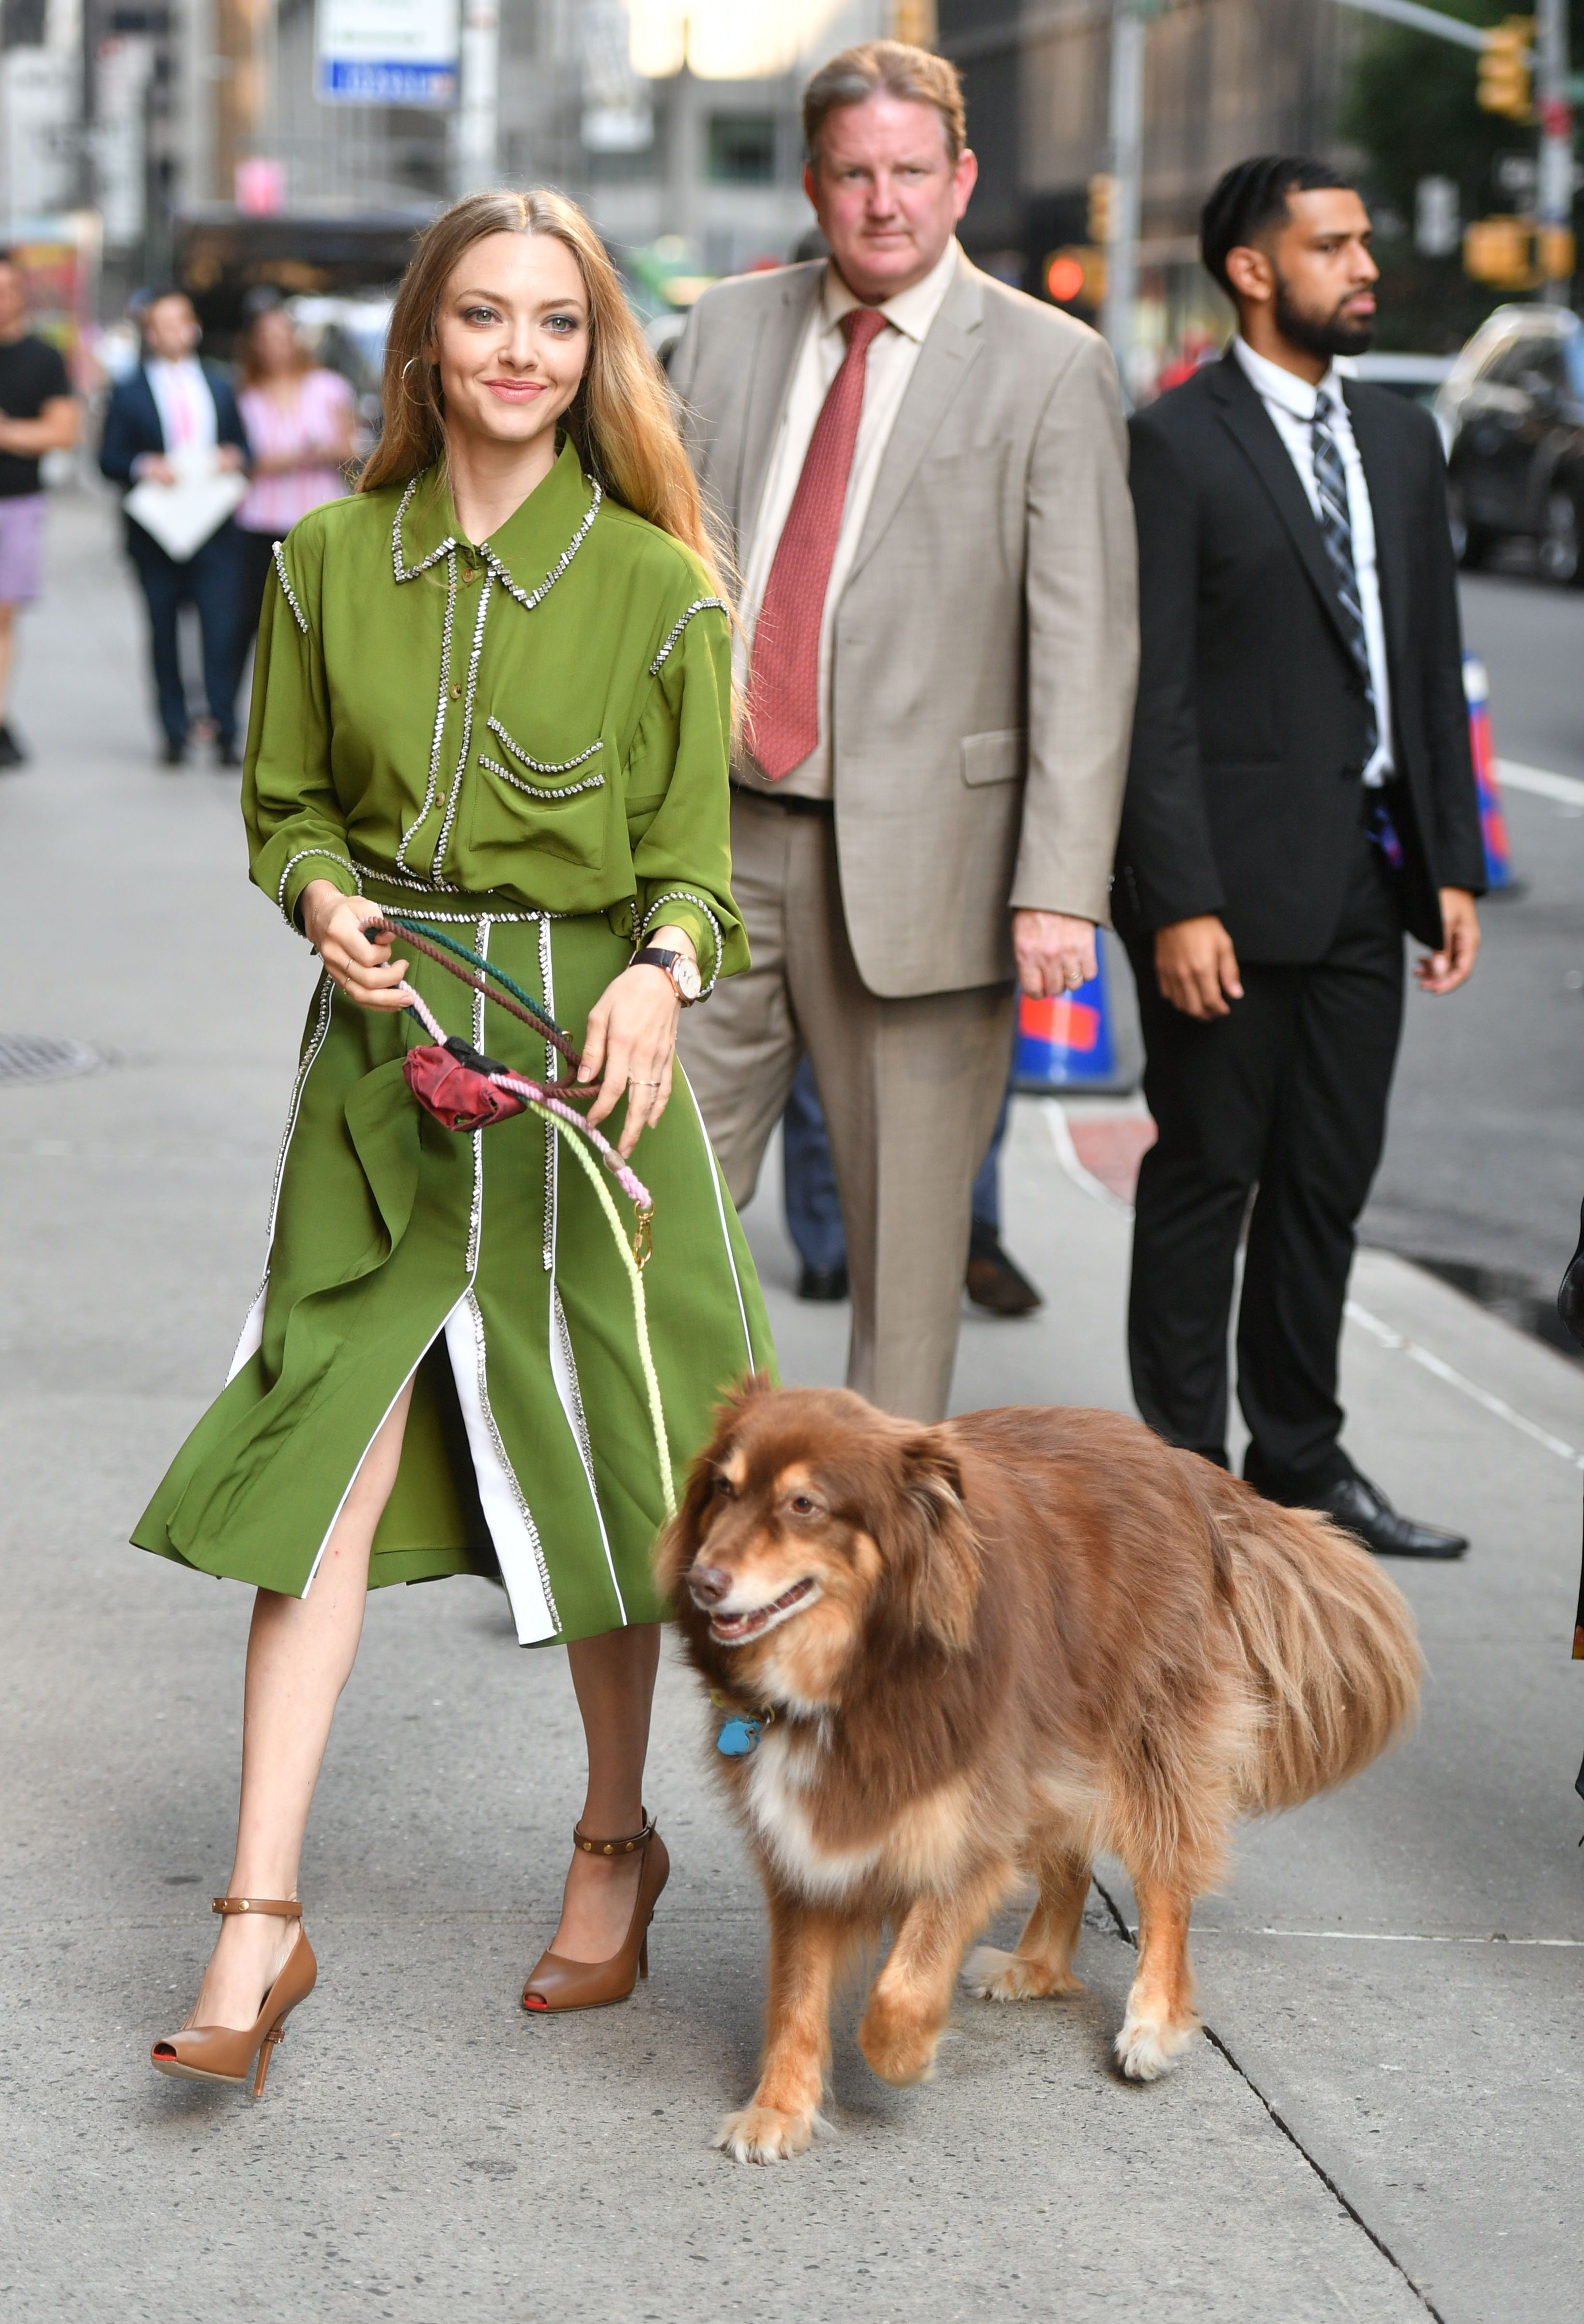 """Amanda Seyfried and her dog Finn arrived at the """"Late Show with Stephen Colbert"""" TV show studios in New York City on Aug. 6, 2019."""